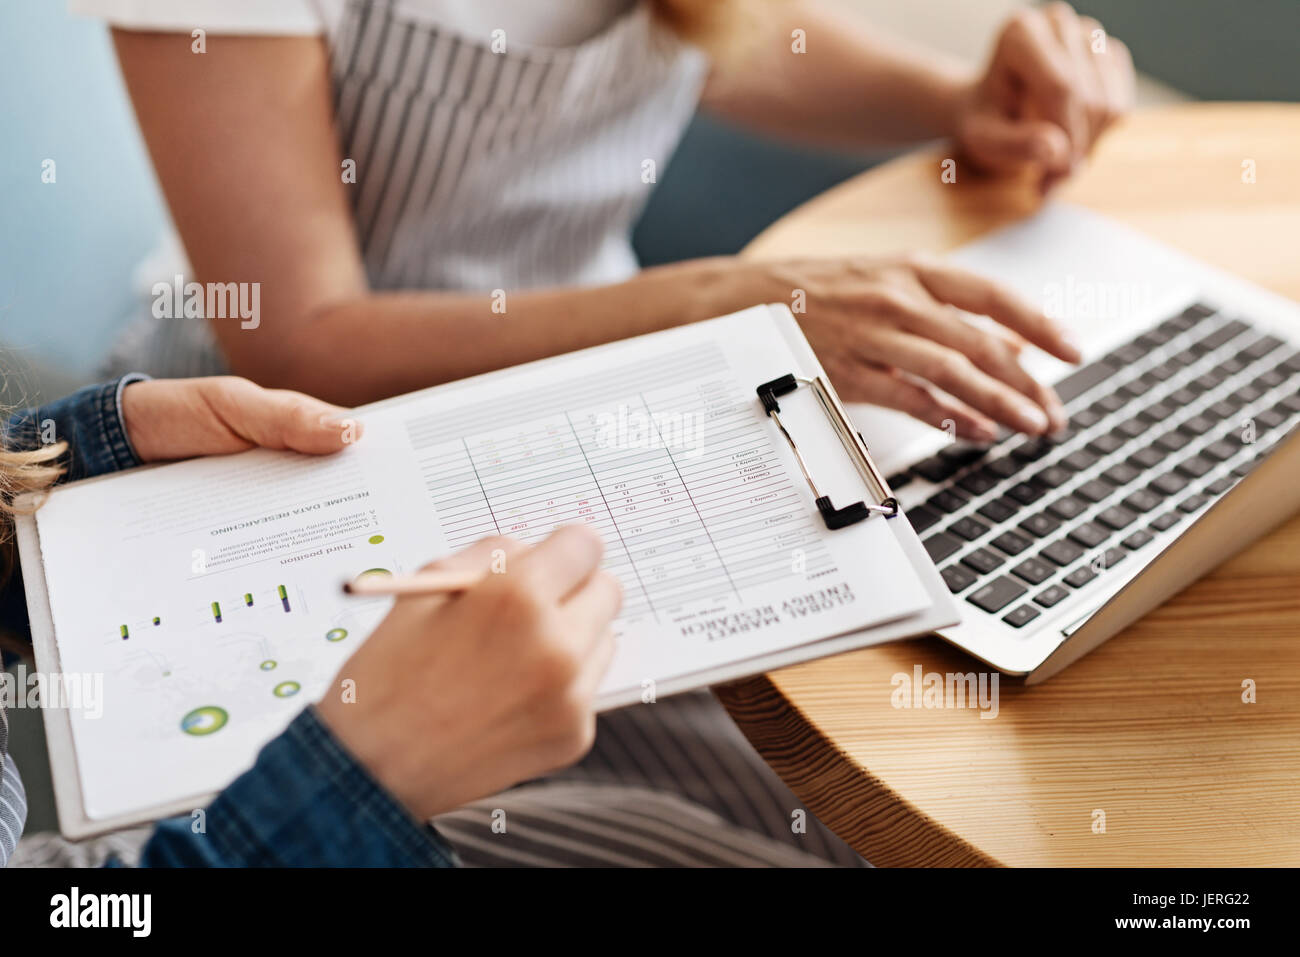 Dainty female hands holding a printout in sheet holder - Stock Image